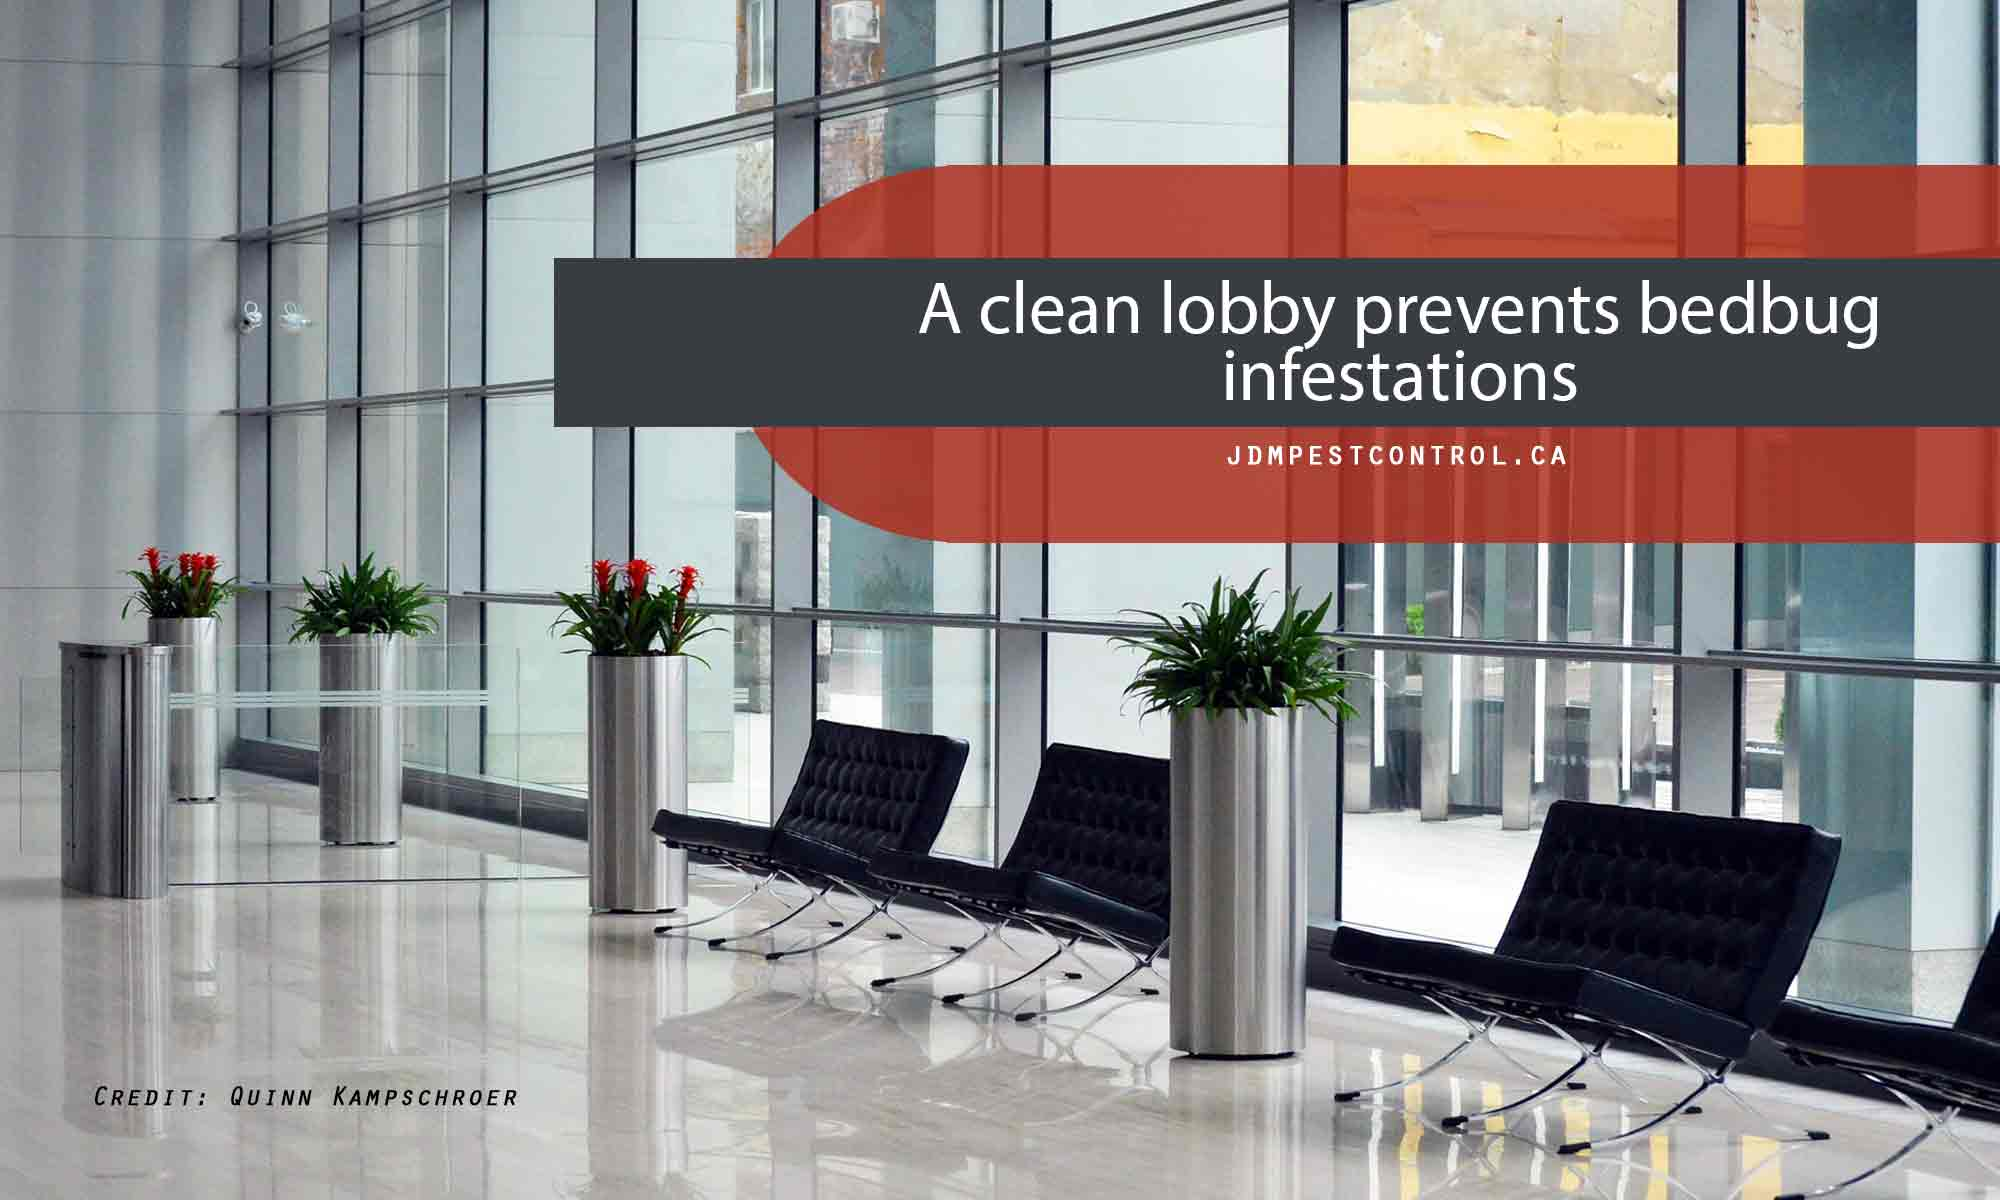 A clean lobby prevents bedbug infestations